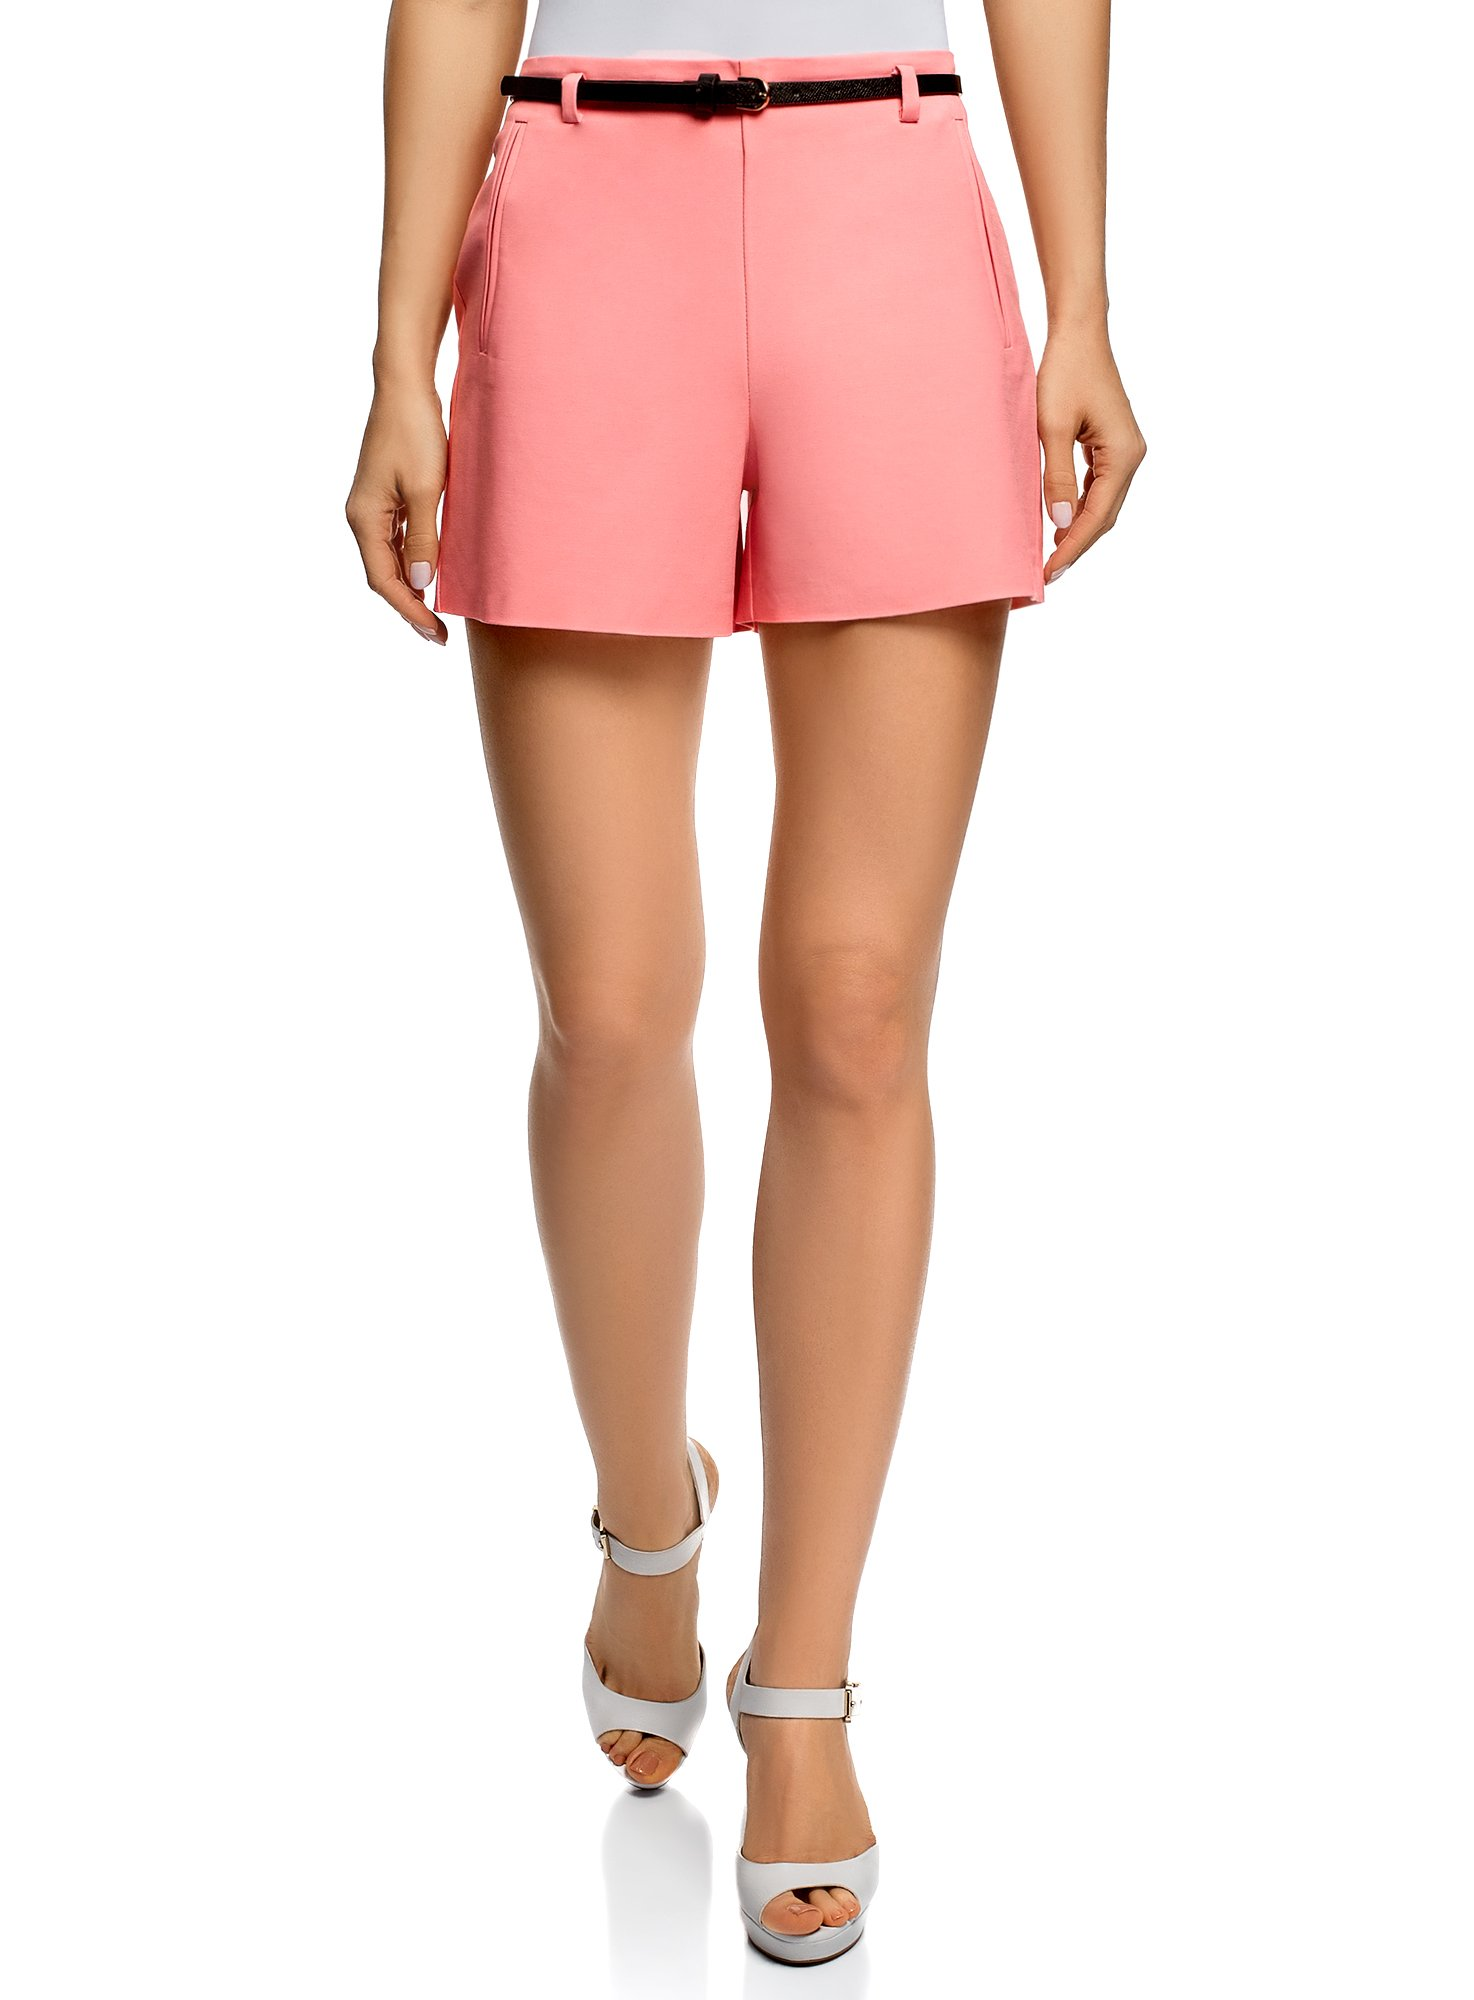 oodji Ultra Women's Belted Cotton Shorts, Pink, 6